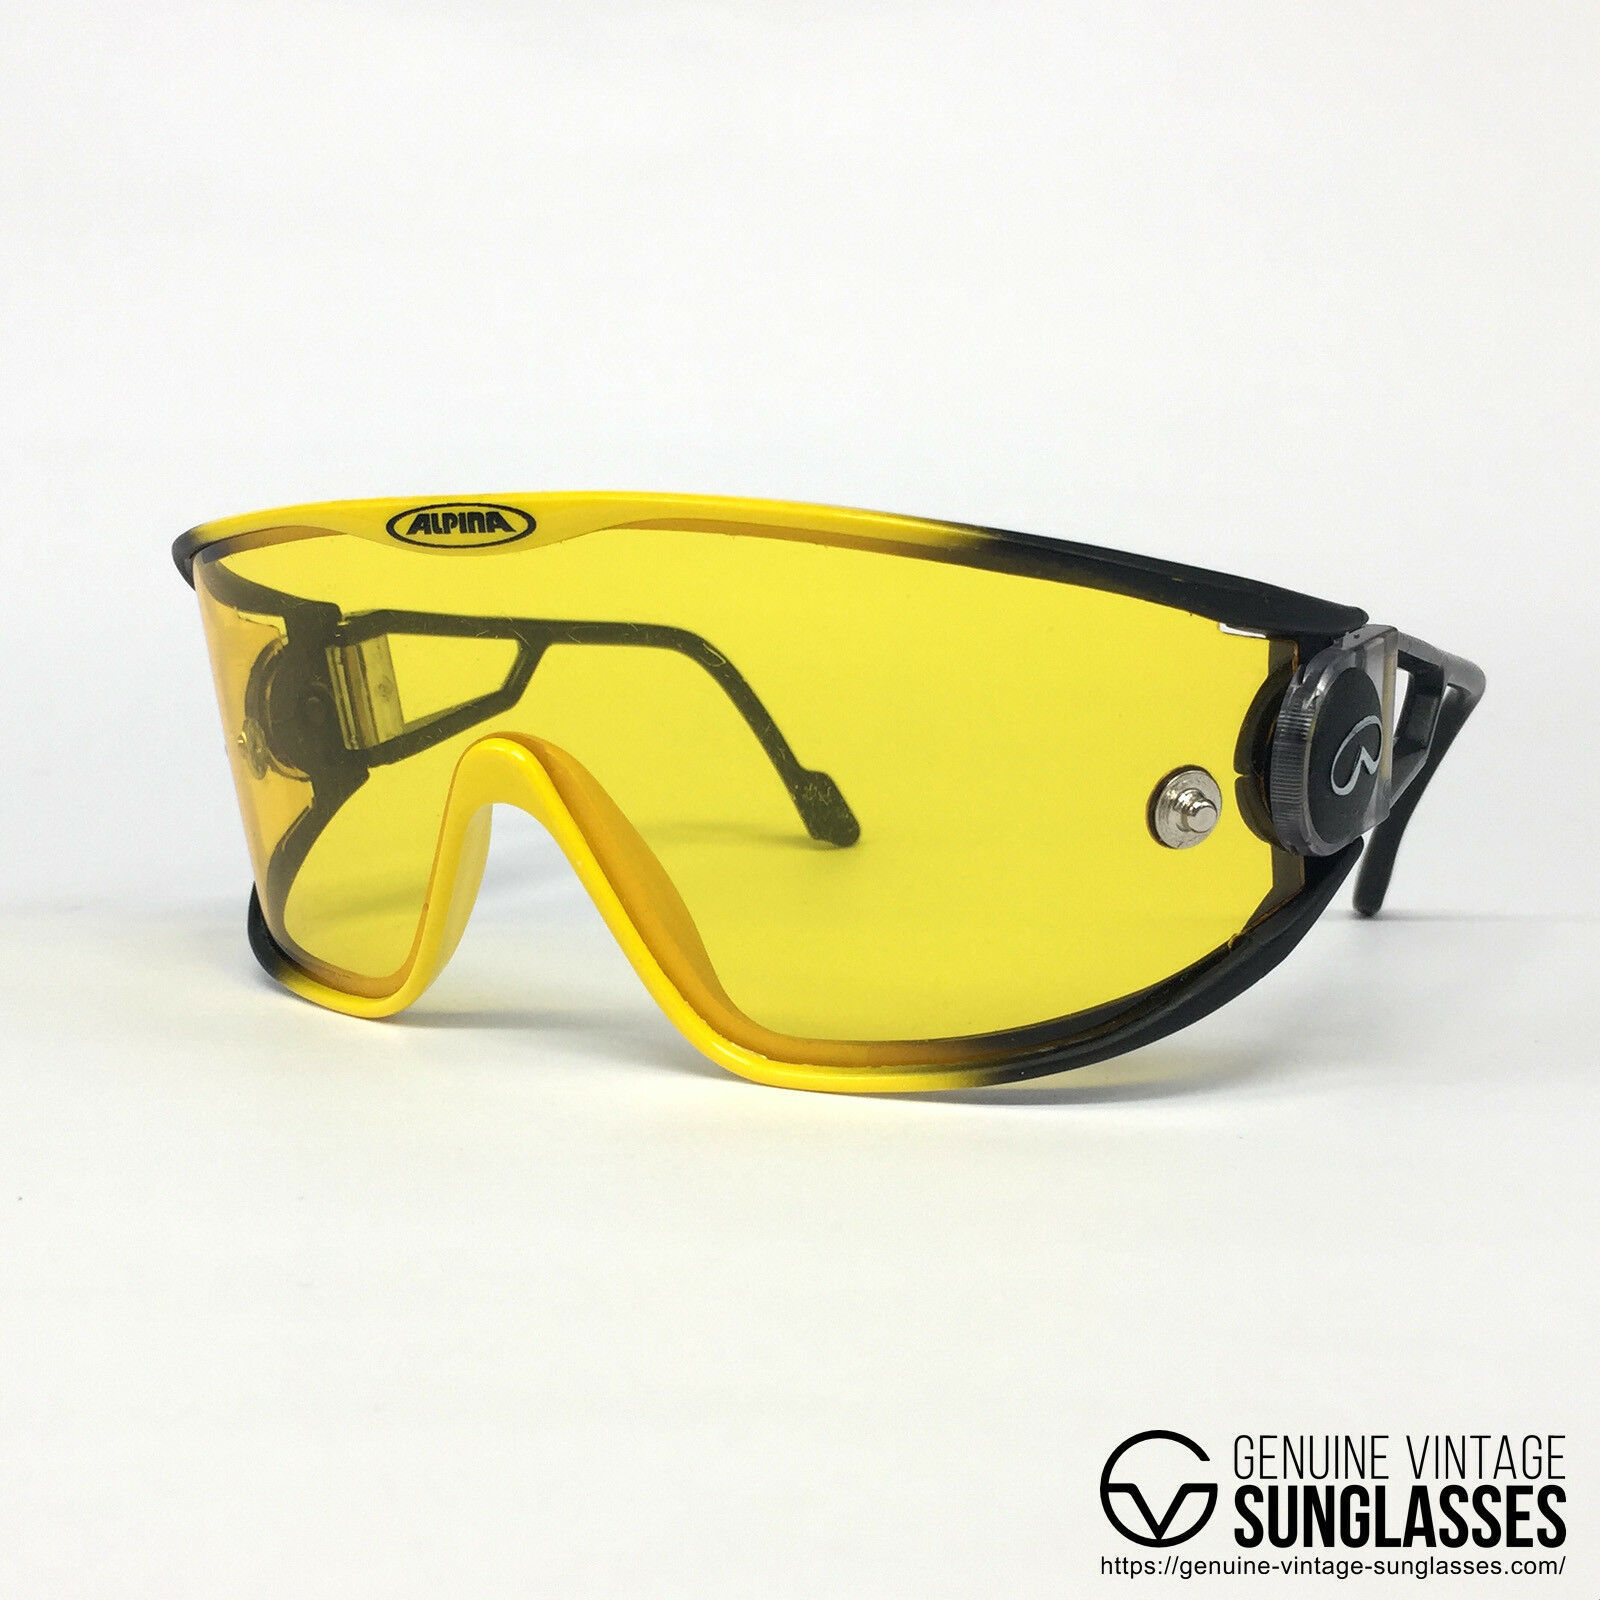 Primary image for ALPINA S3 Yellow vintage sunglasses - Various Swing - W.Germany 80s Large